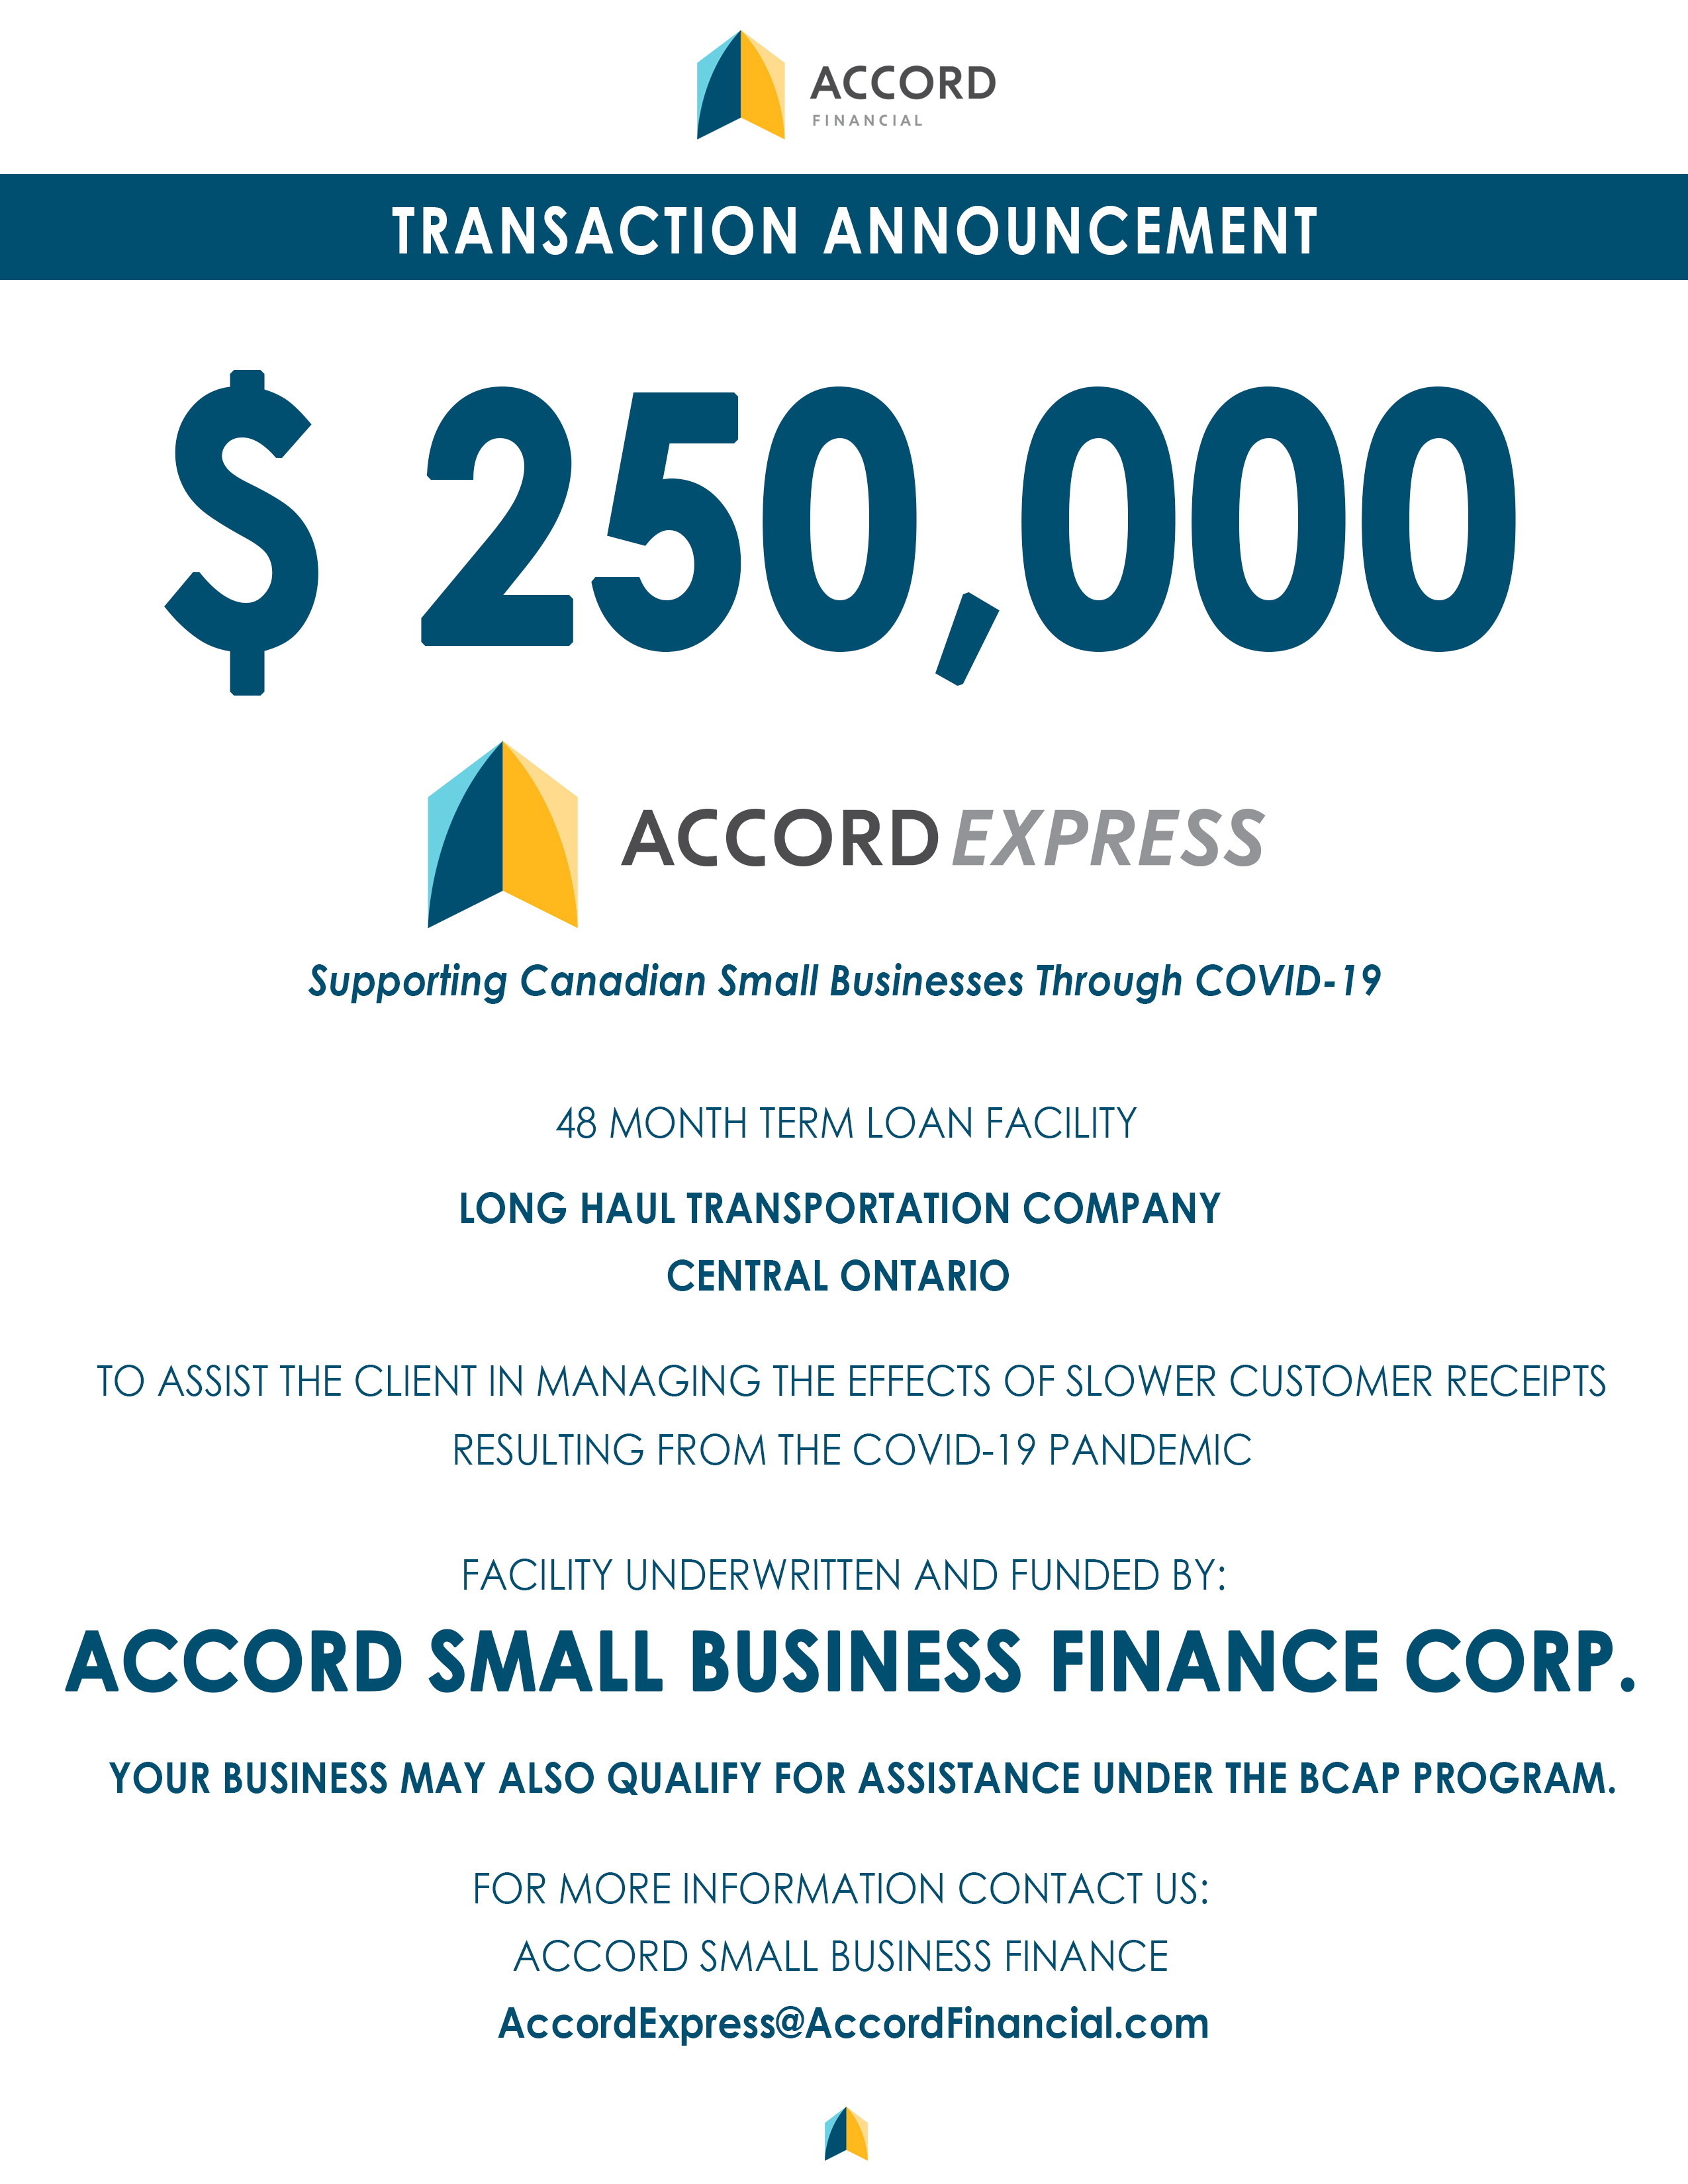 Accord Small Business Finance - Transaction Announcement for the Business Credit Availability (BCAP) Program for a Long Haul Transportation Company in Central Ontario